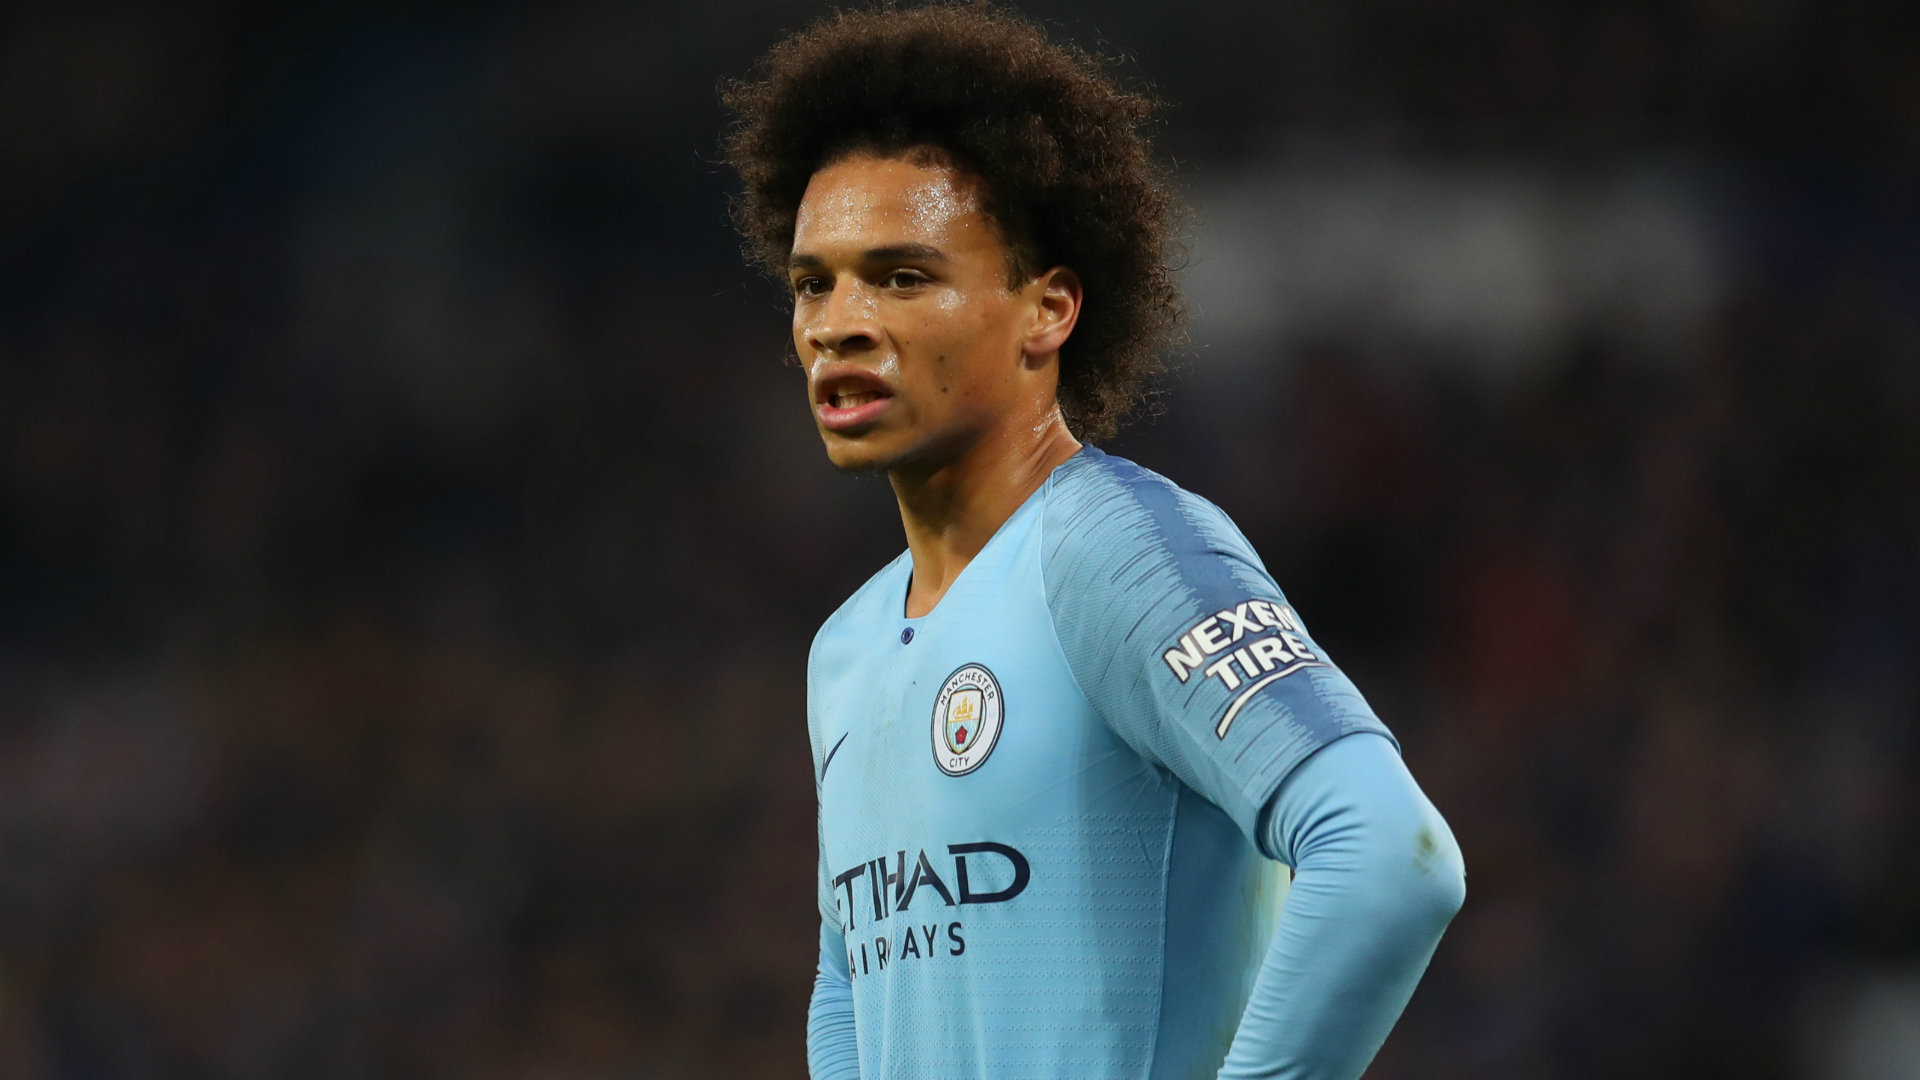 Karl-Heinz Rummenigge is prepared to be patient as Bayern Munich continue to court Manchester City's Leroy Sane.